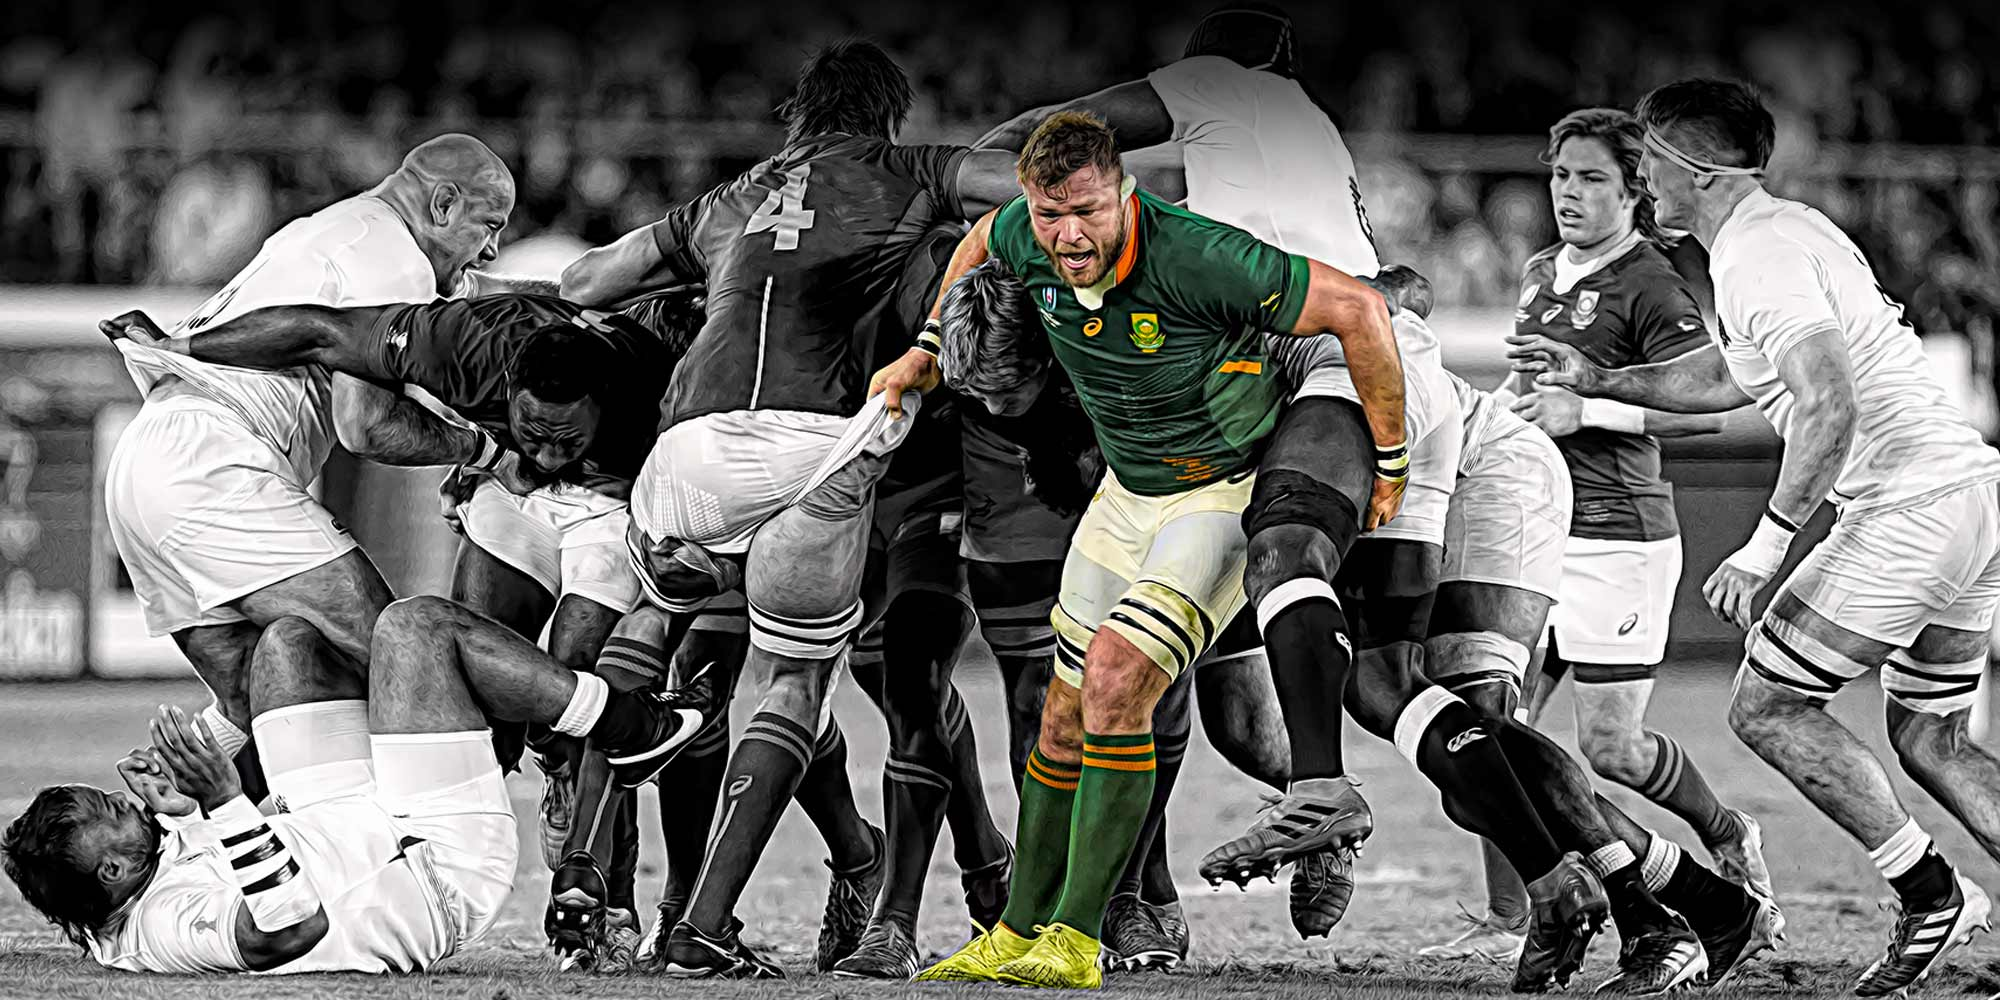 RWC Final: Best Boks v England